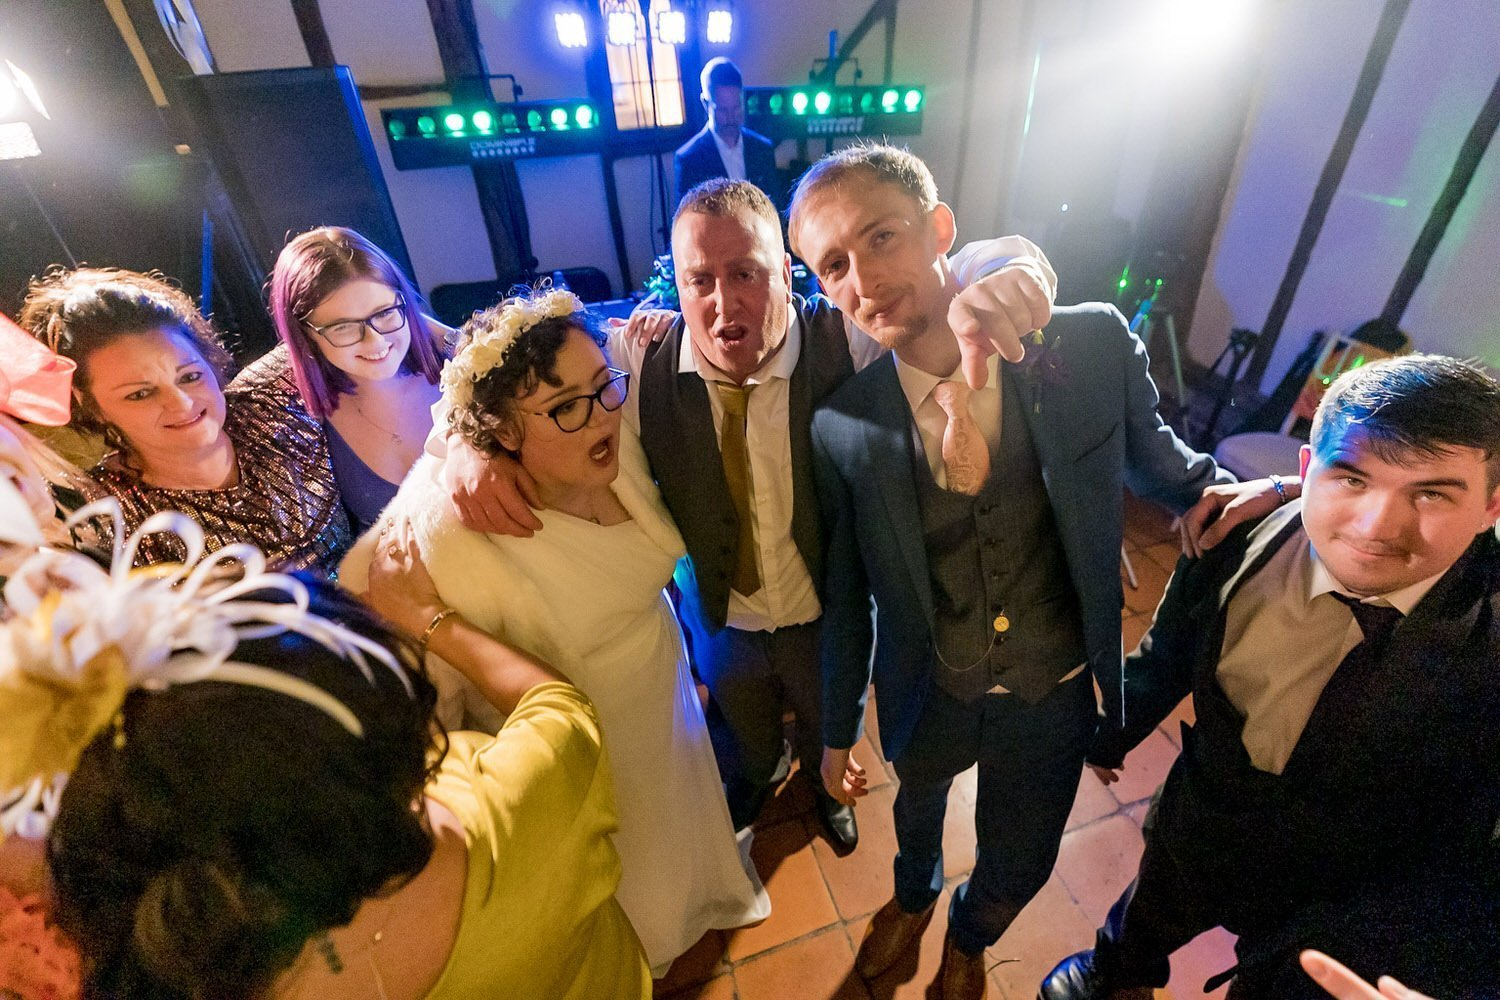 The Barns Hotel Bedford Wooten Weddings Photography Bride and groom on the dancefloor huddled together with their family and friends